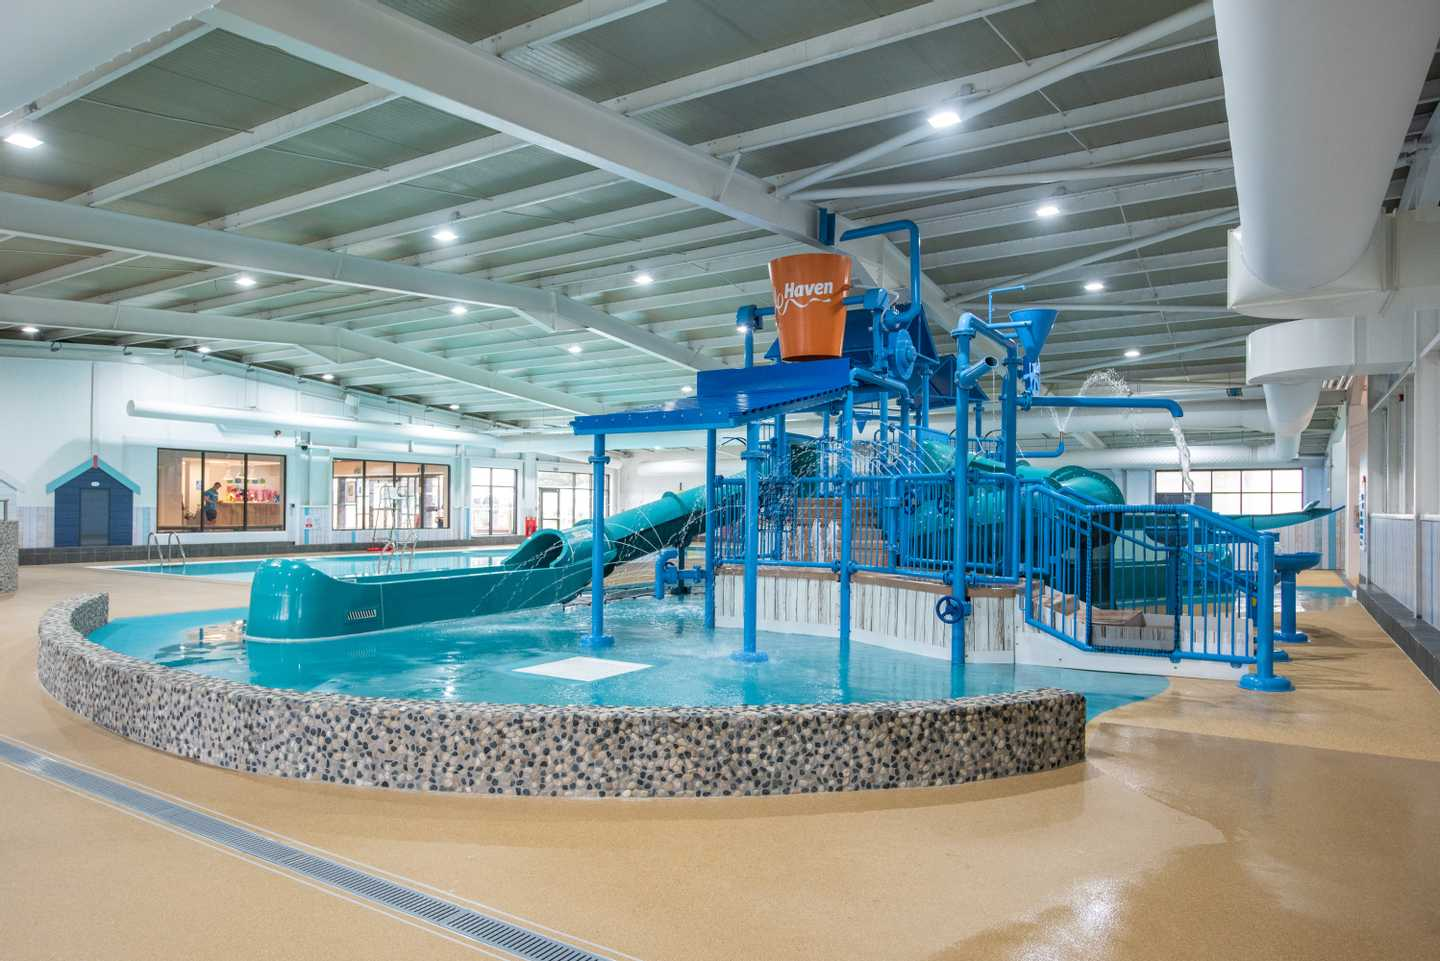 NEW - The Shore Water Park indoor pool**